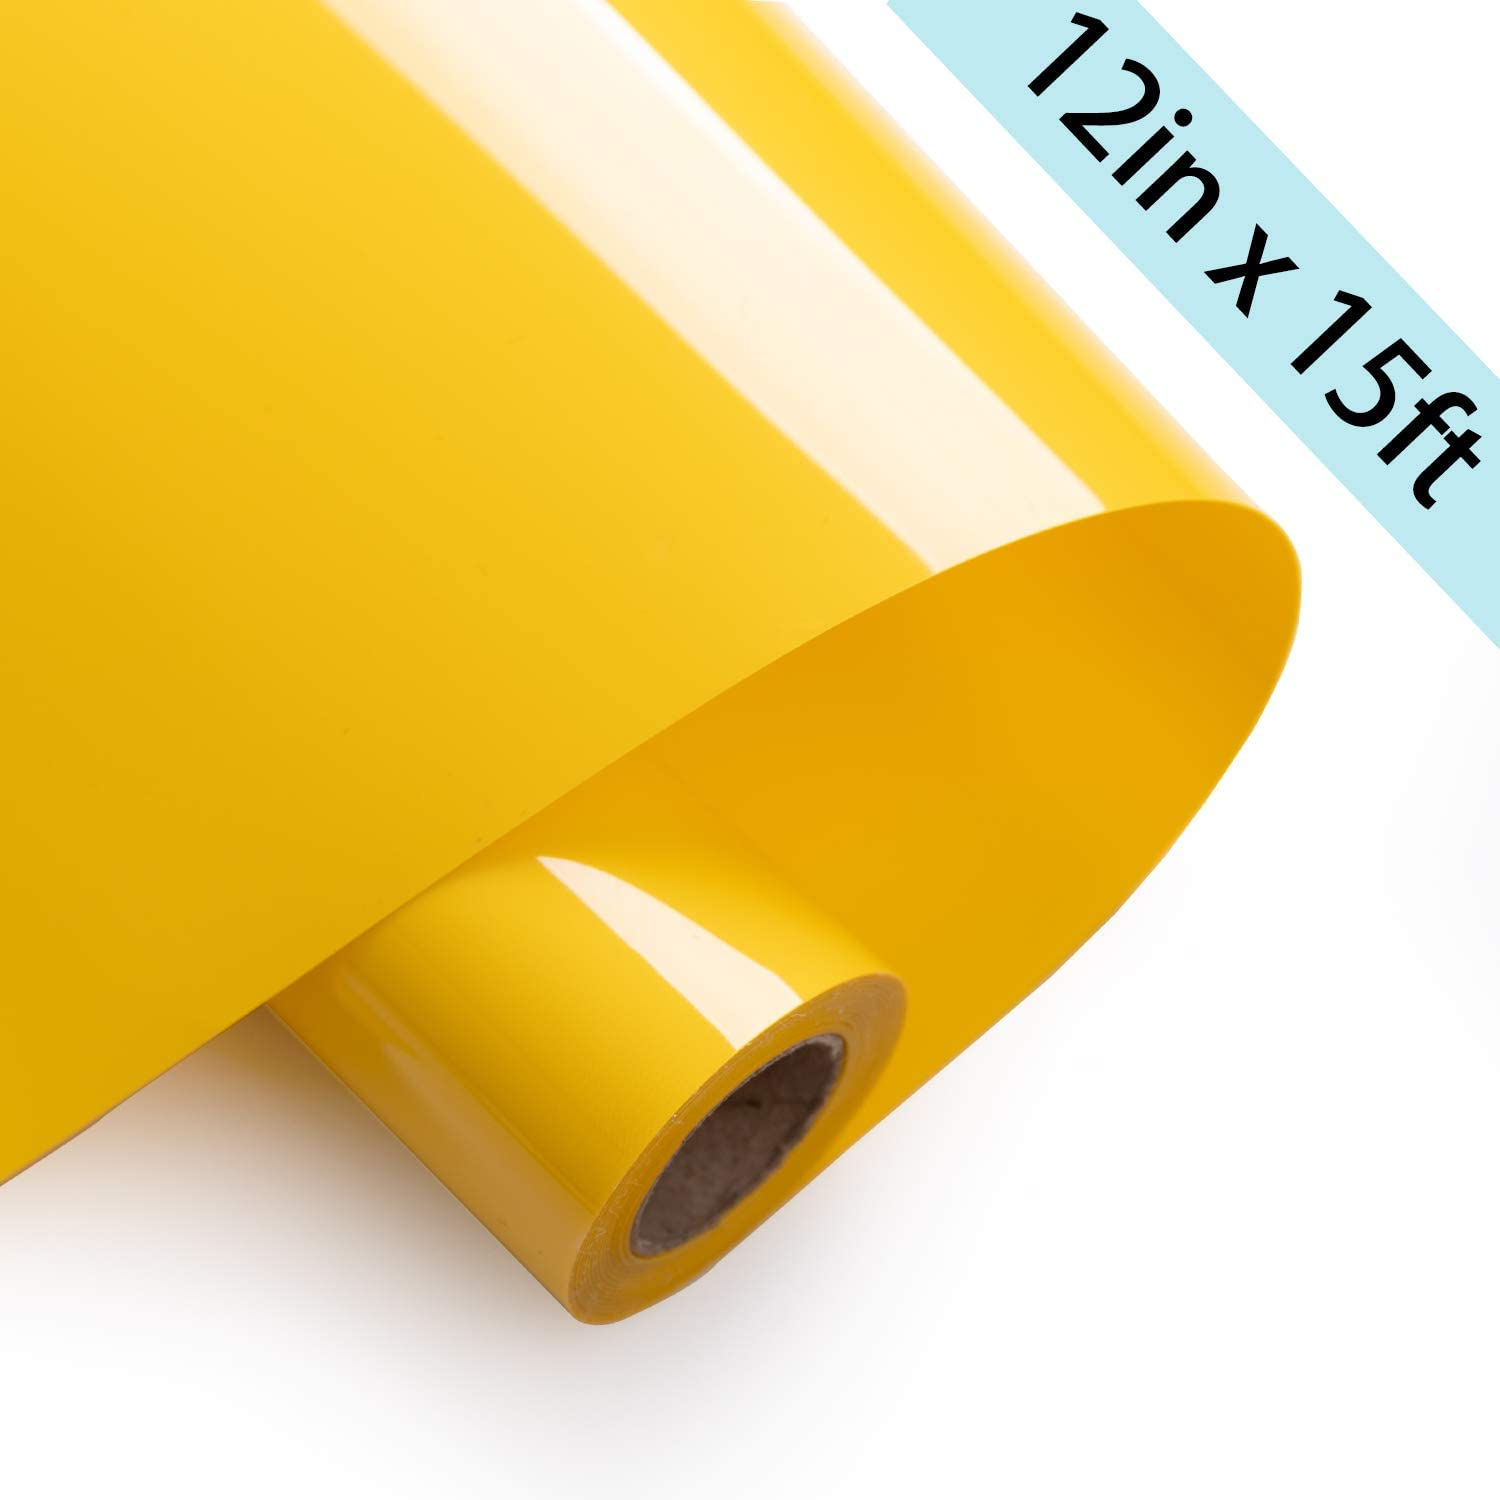 LaFancy Heat Transfer Vinyl Rolls 12inch x 15feet, HTV Iron on Vinyl for Silhouette Cameo, Heat Transfer Vinyl for T-Shirts(Yellow)